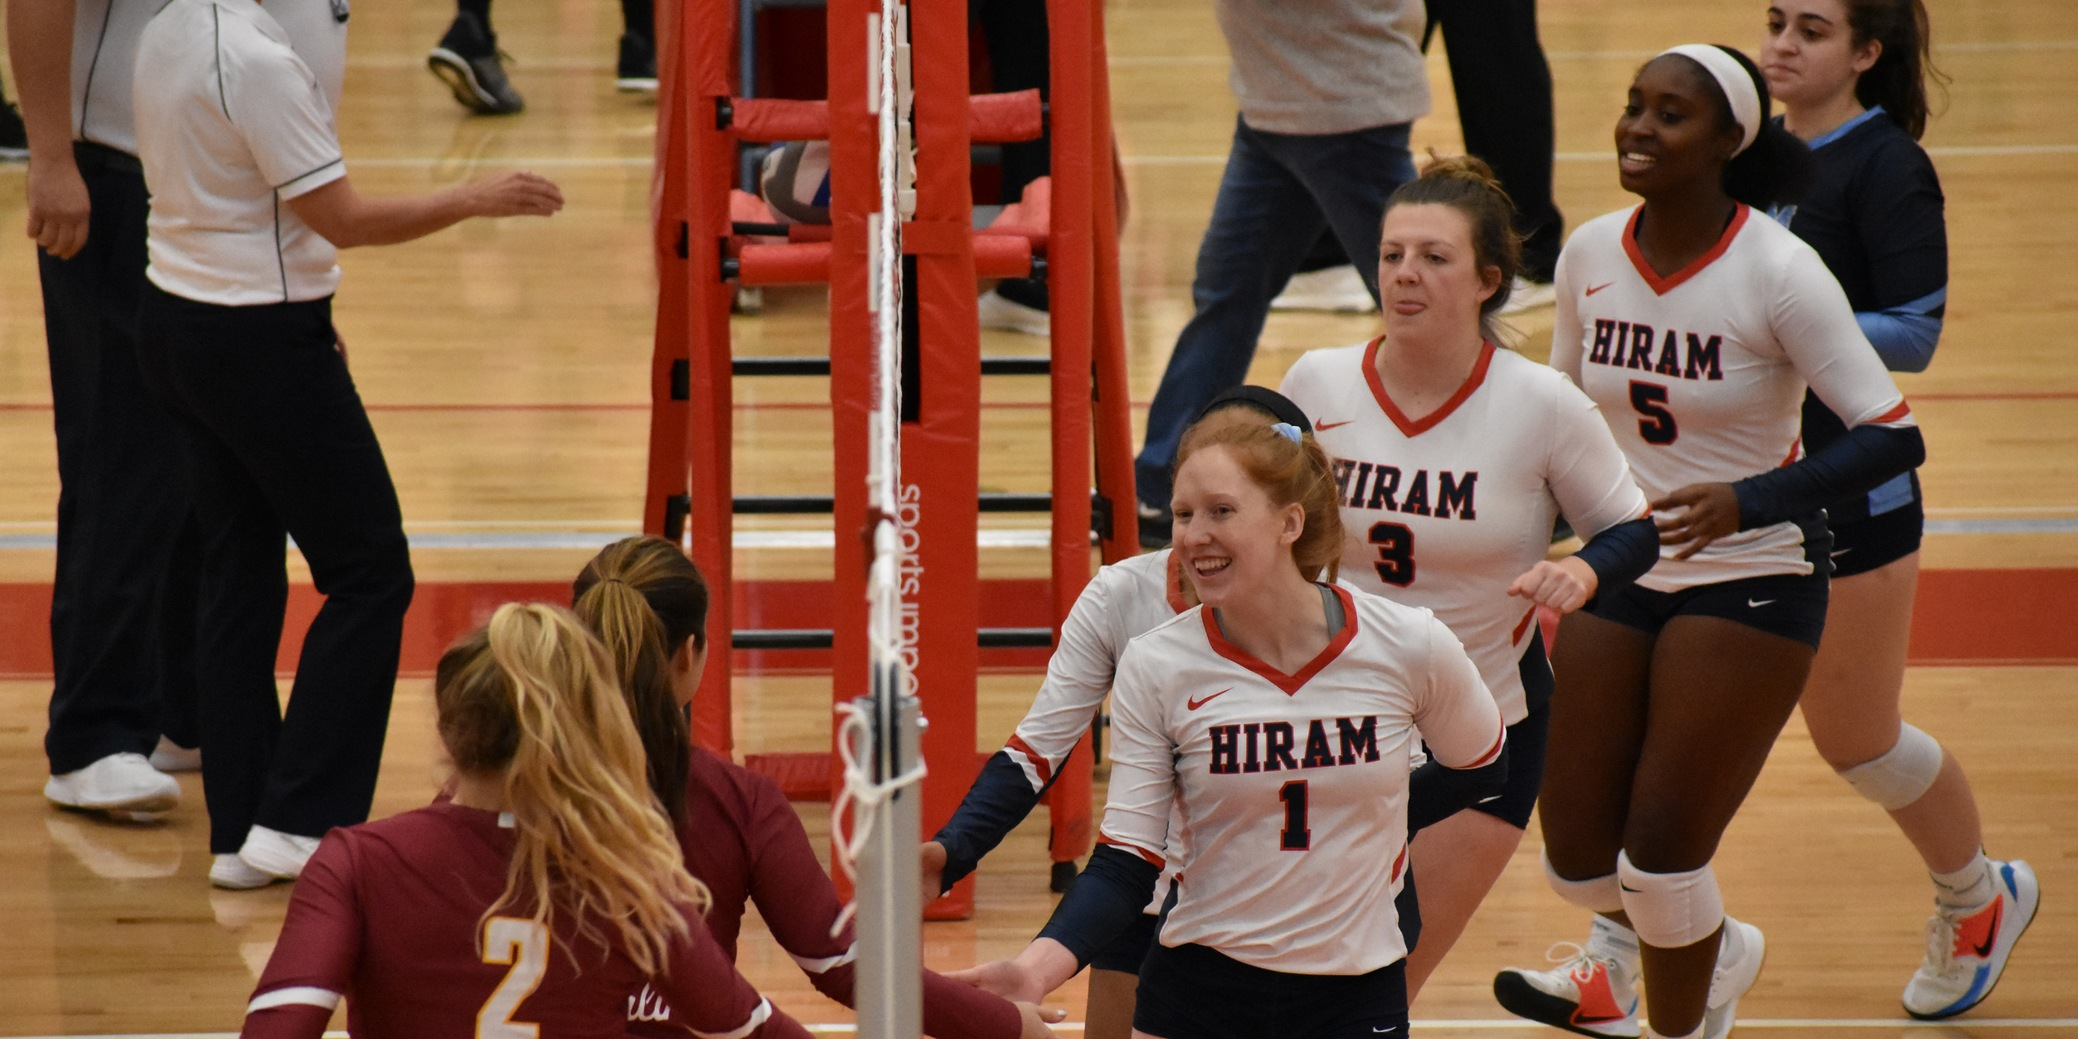 Hiram Women's Volleyball Tops Oberlin, Falls to DePauw in the NCAC Tournament Quarterfinals